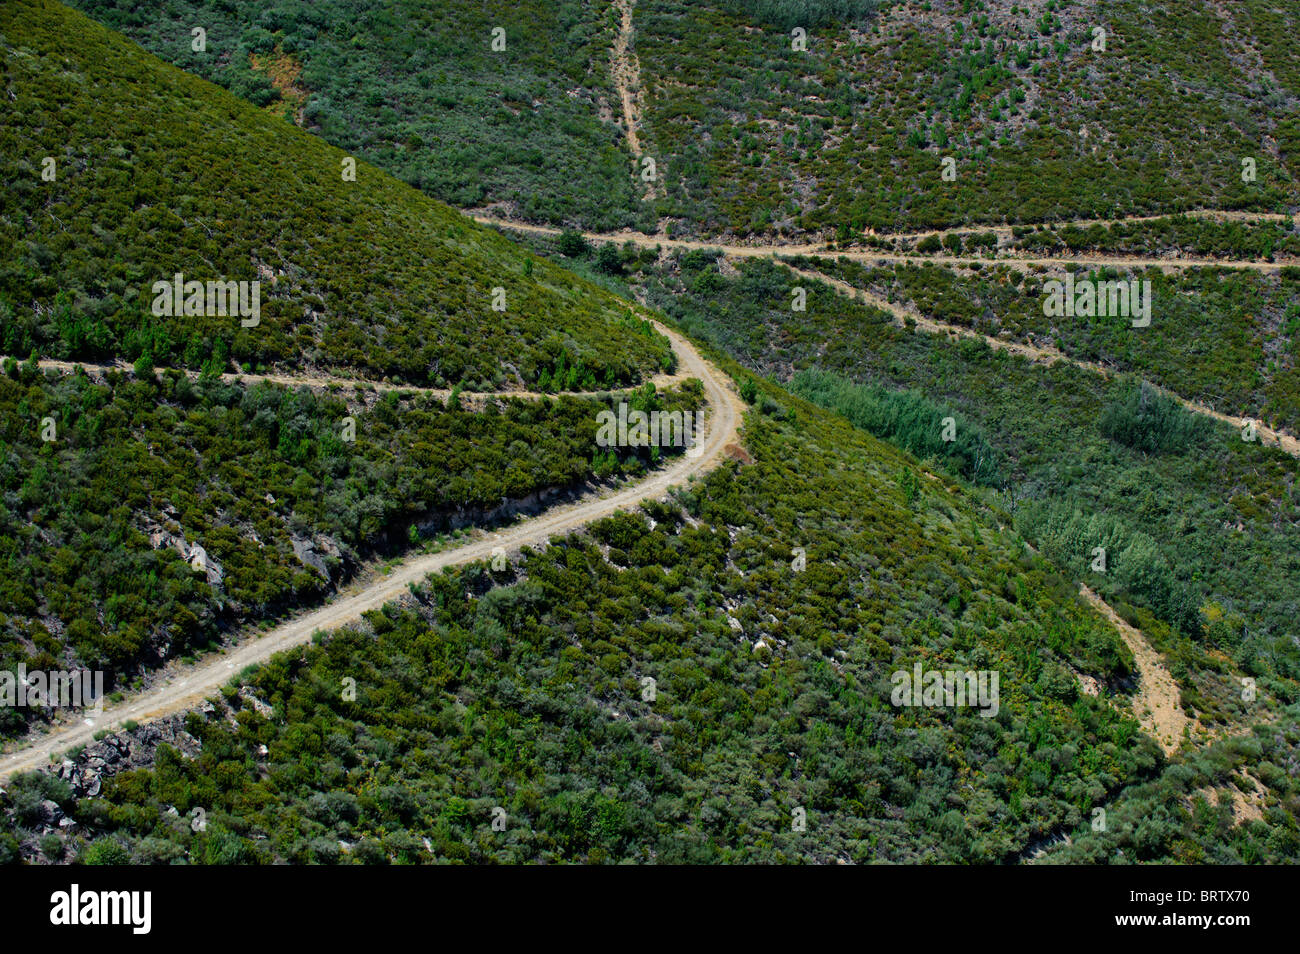 Rural roads and footpaths on a green hillside - Stock Image